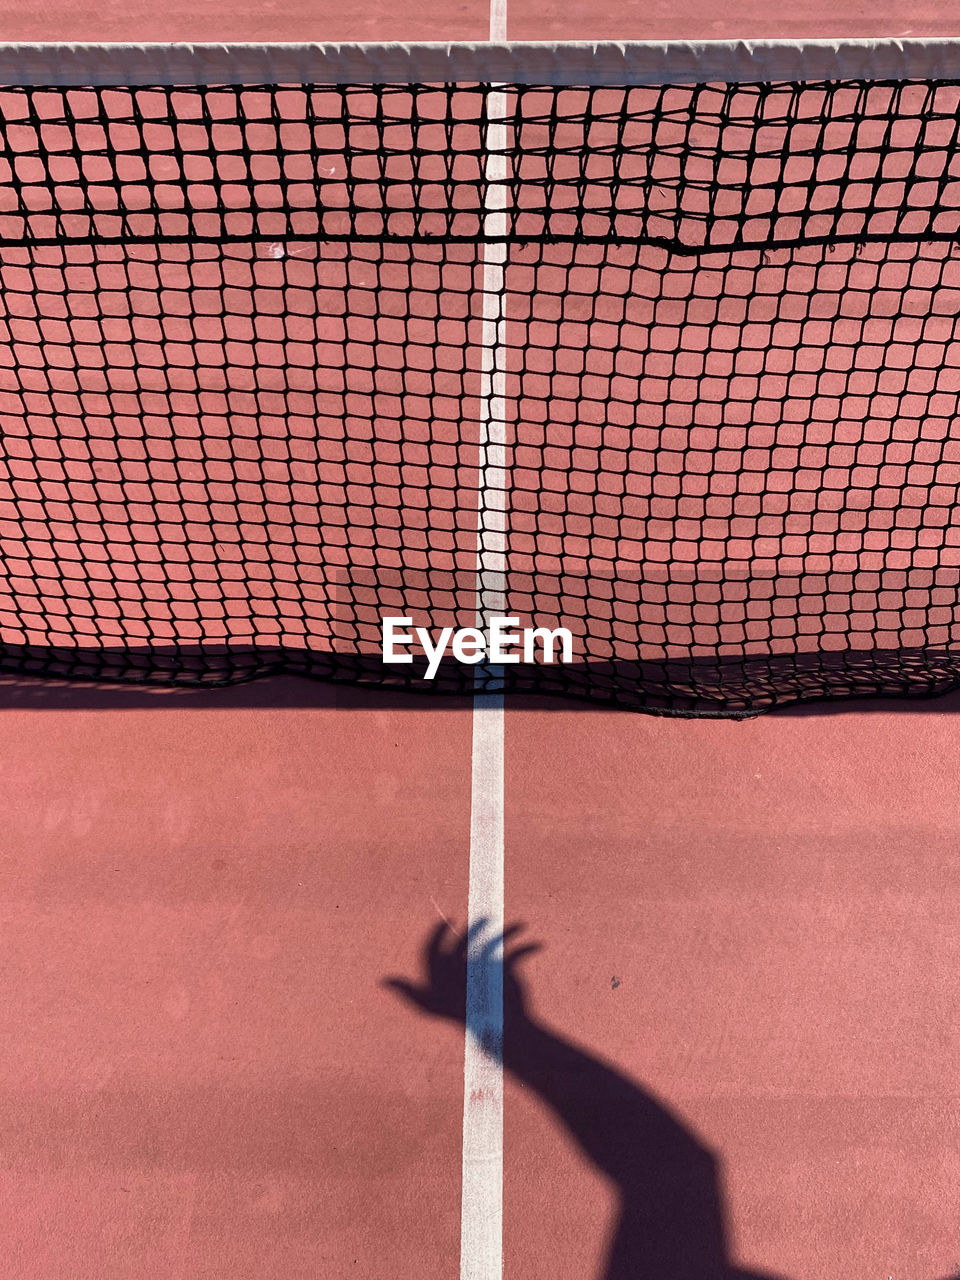 Shadow of hand on tennis court